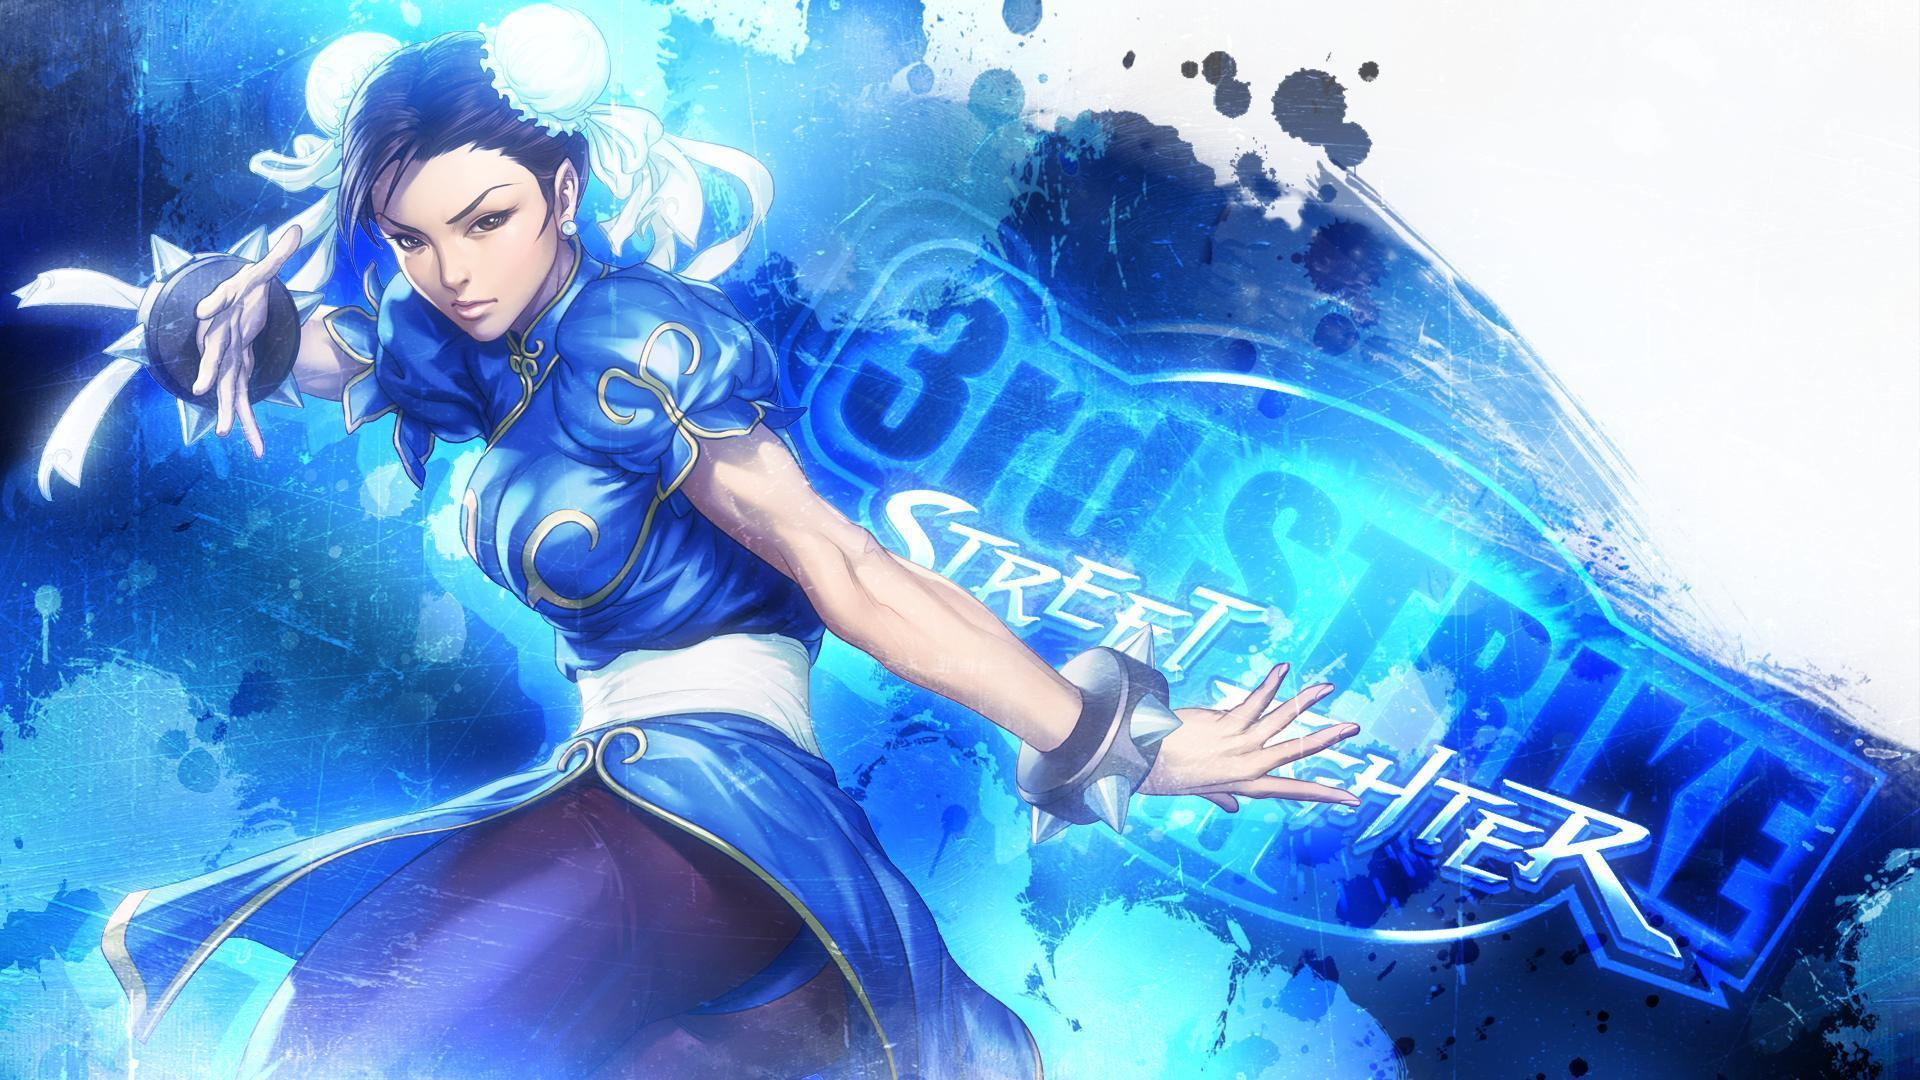 Street Fighter Chun Li Wallpapers Wallpaper Cave